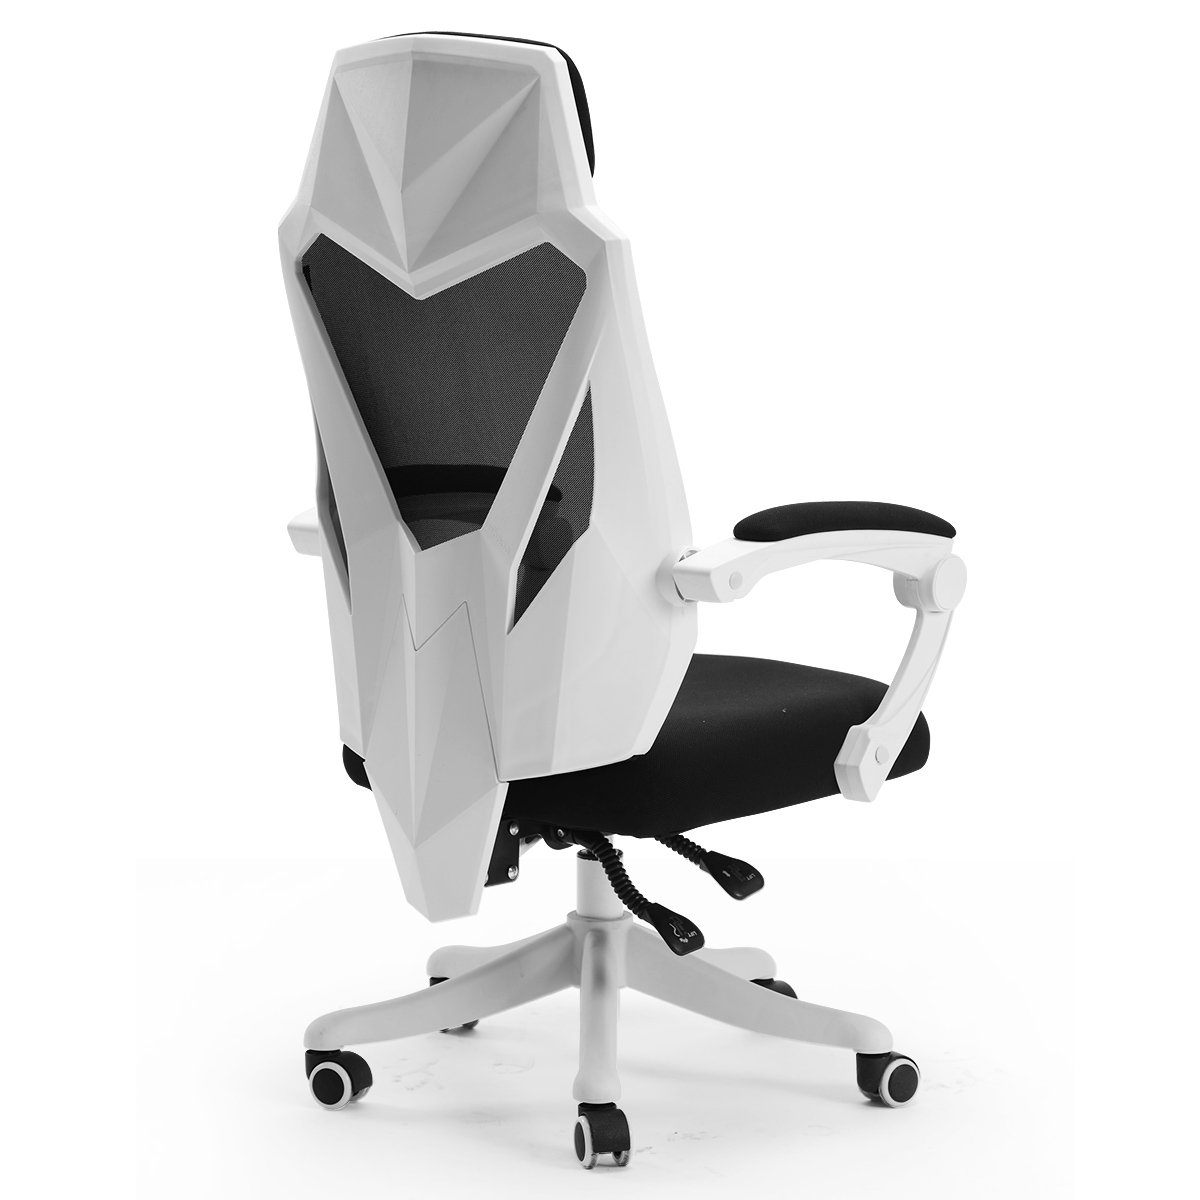 Hbada Office Computer Desk Chair - Ergonomic High-Back Swivel Task Gaming Chair - White by Hbada (Image #2)